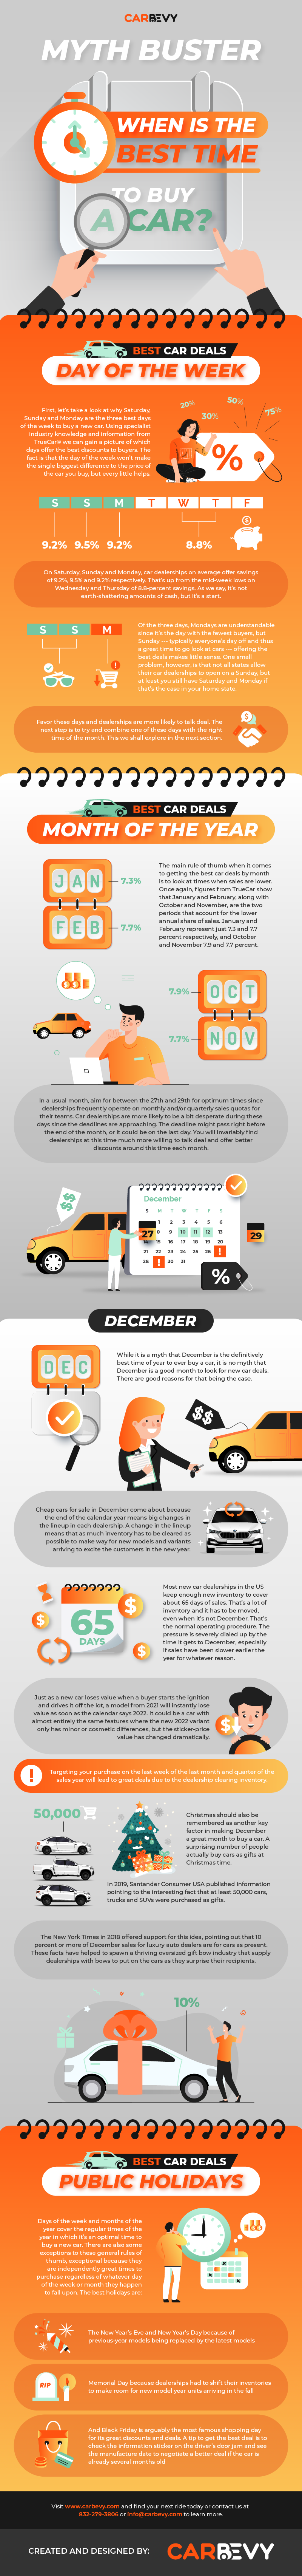 best time to buy car